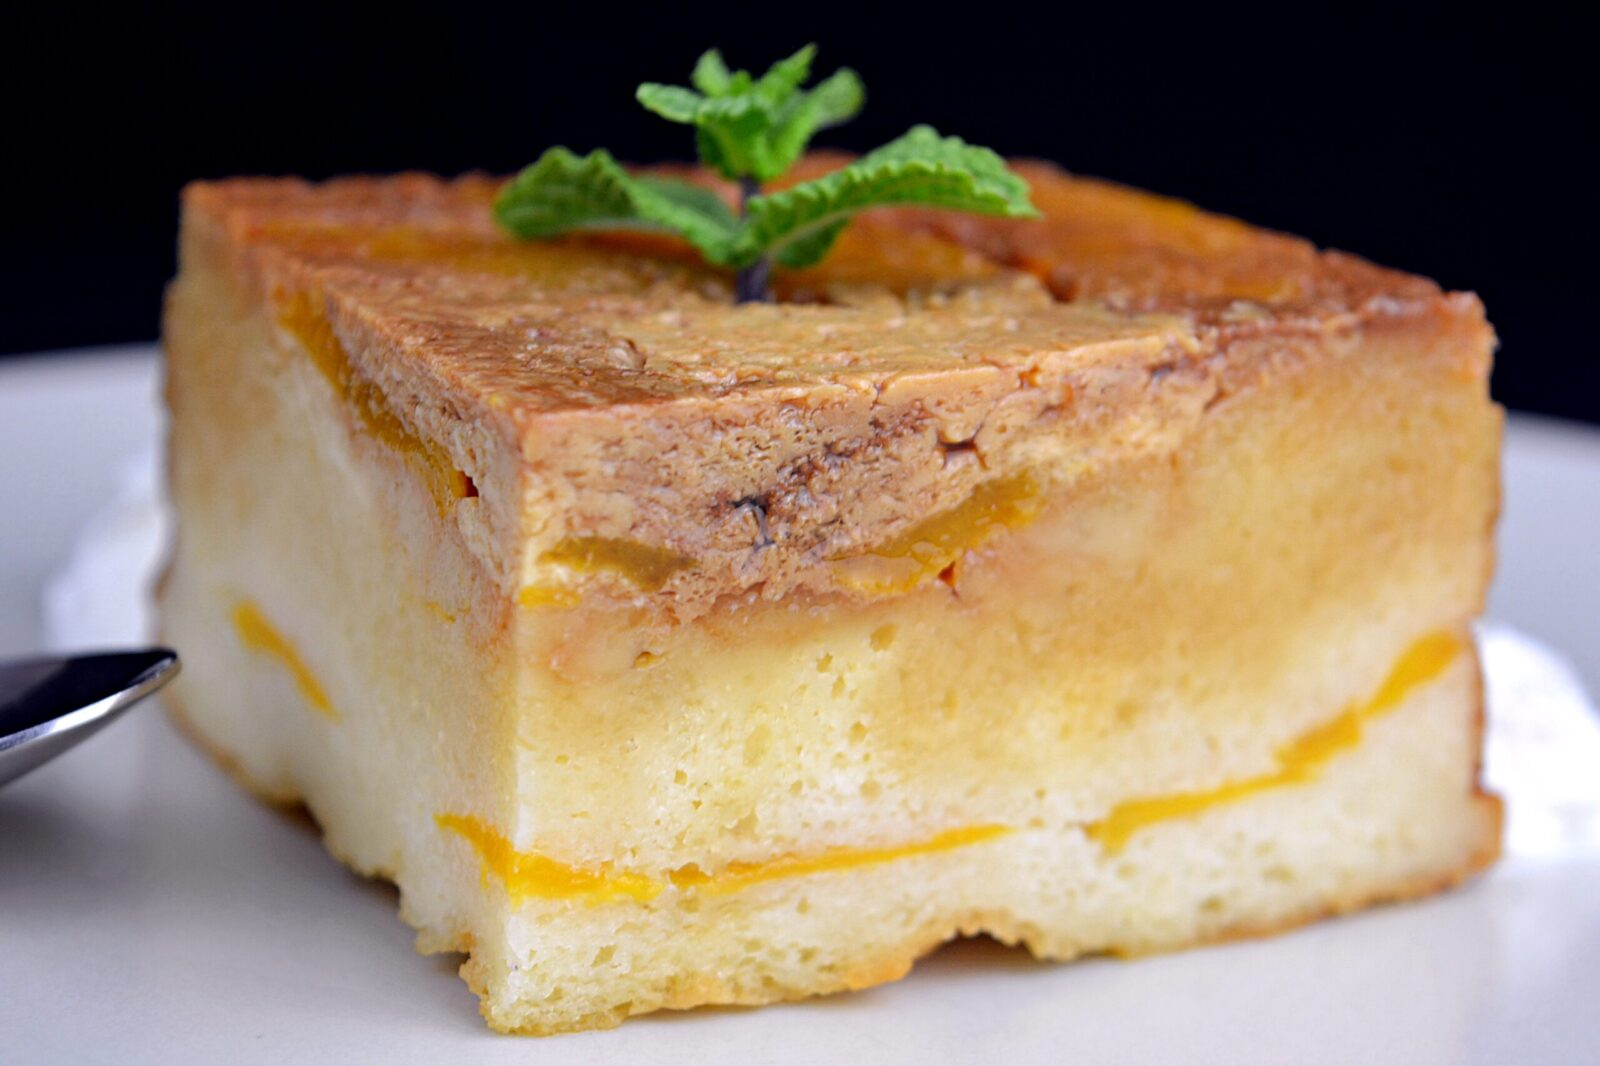 Peach pudding in sponge cake syrup